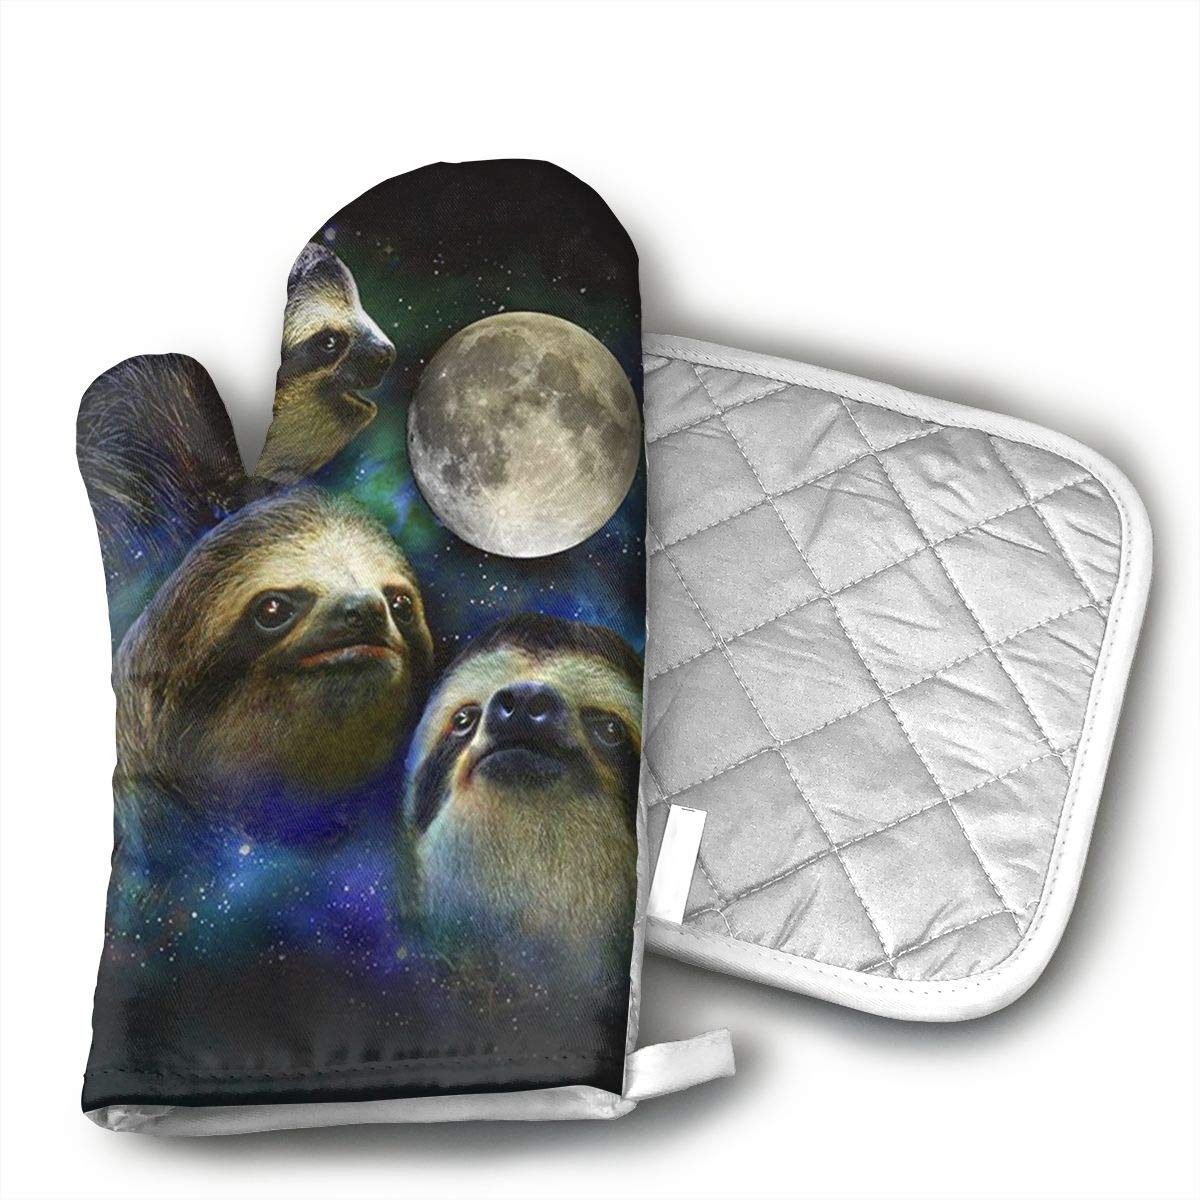 Three Moon Sloth Oven Mitts and Pot Holders Set with Polyester Cotton Non-Slip Grip, Heat Resistant, Oven Gloves for BBQ Cooking Baking, Grilling